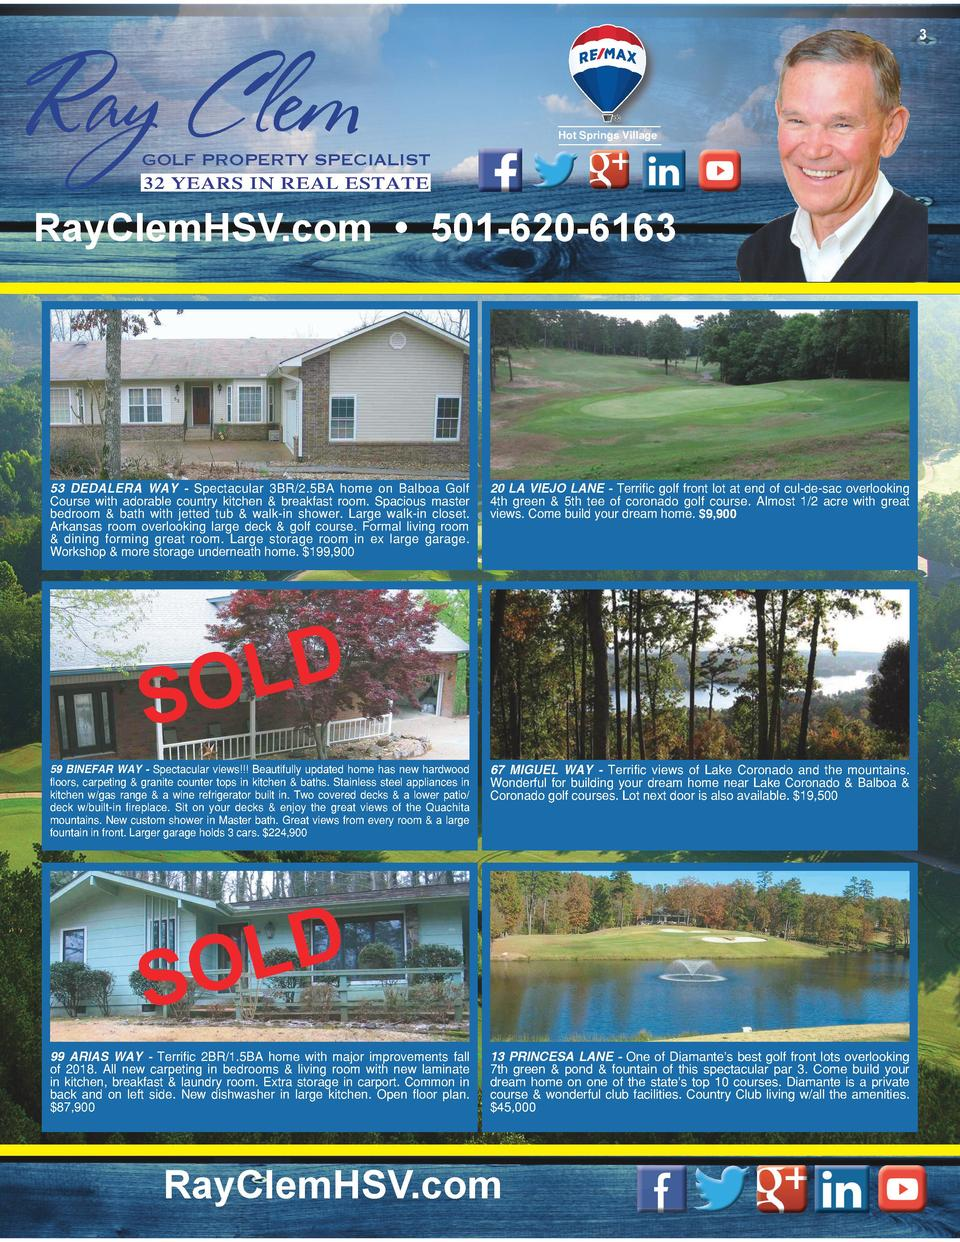 3  Ray Clem  Hot Springs Village  GOLF PROPERTY SPECIALIST 32 YEARS IN REAL ESTATE  RayClemHSV.com     501-620-6163  53 DE...